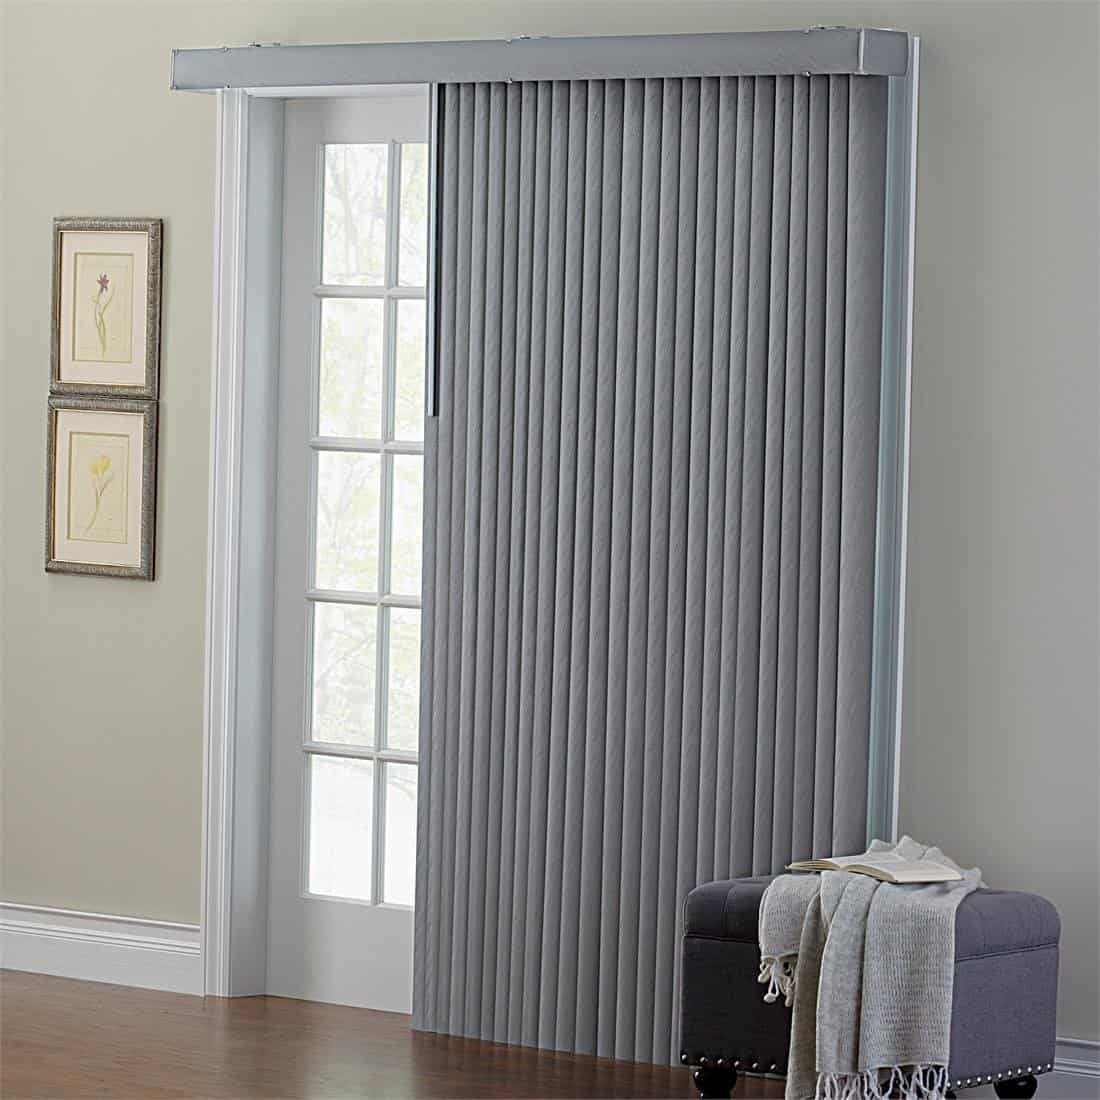 Slide door blinds - Brylanehome Embossed Vertical Blinds Grey 104w 84 L